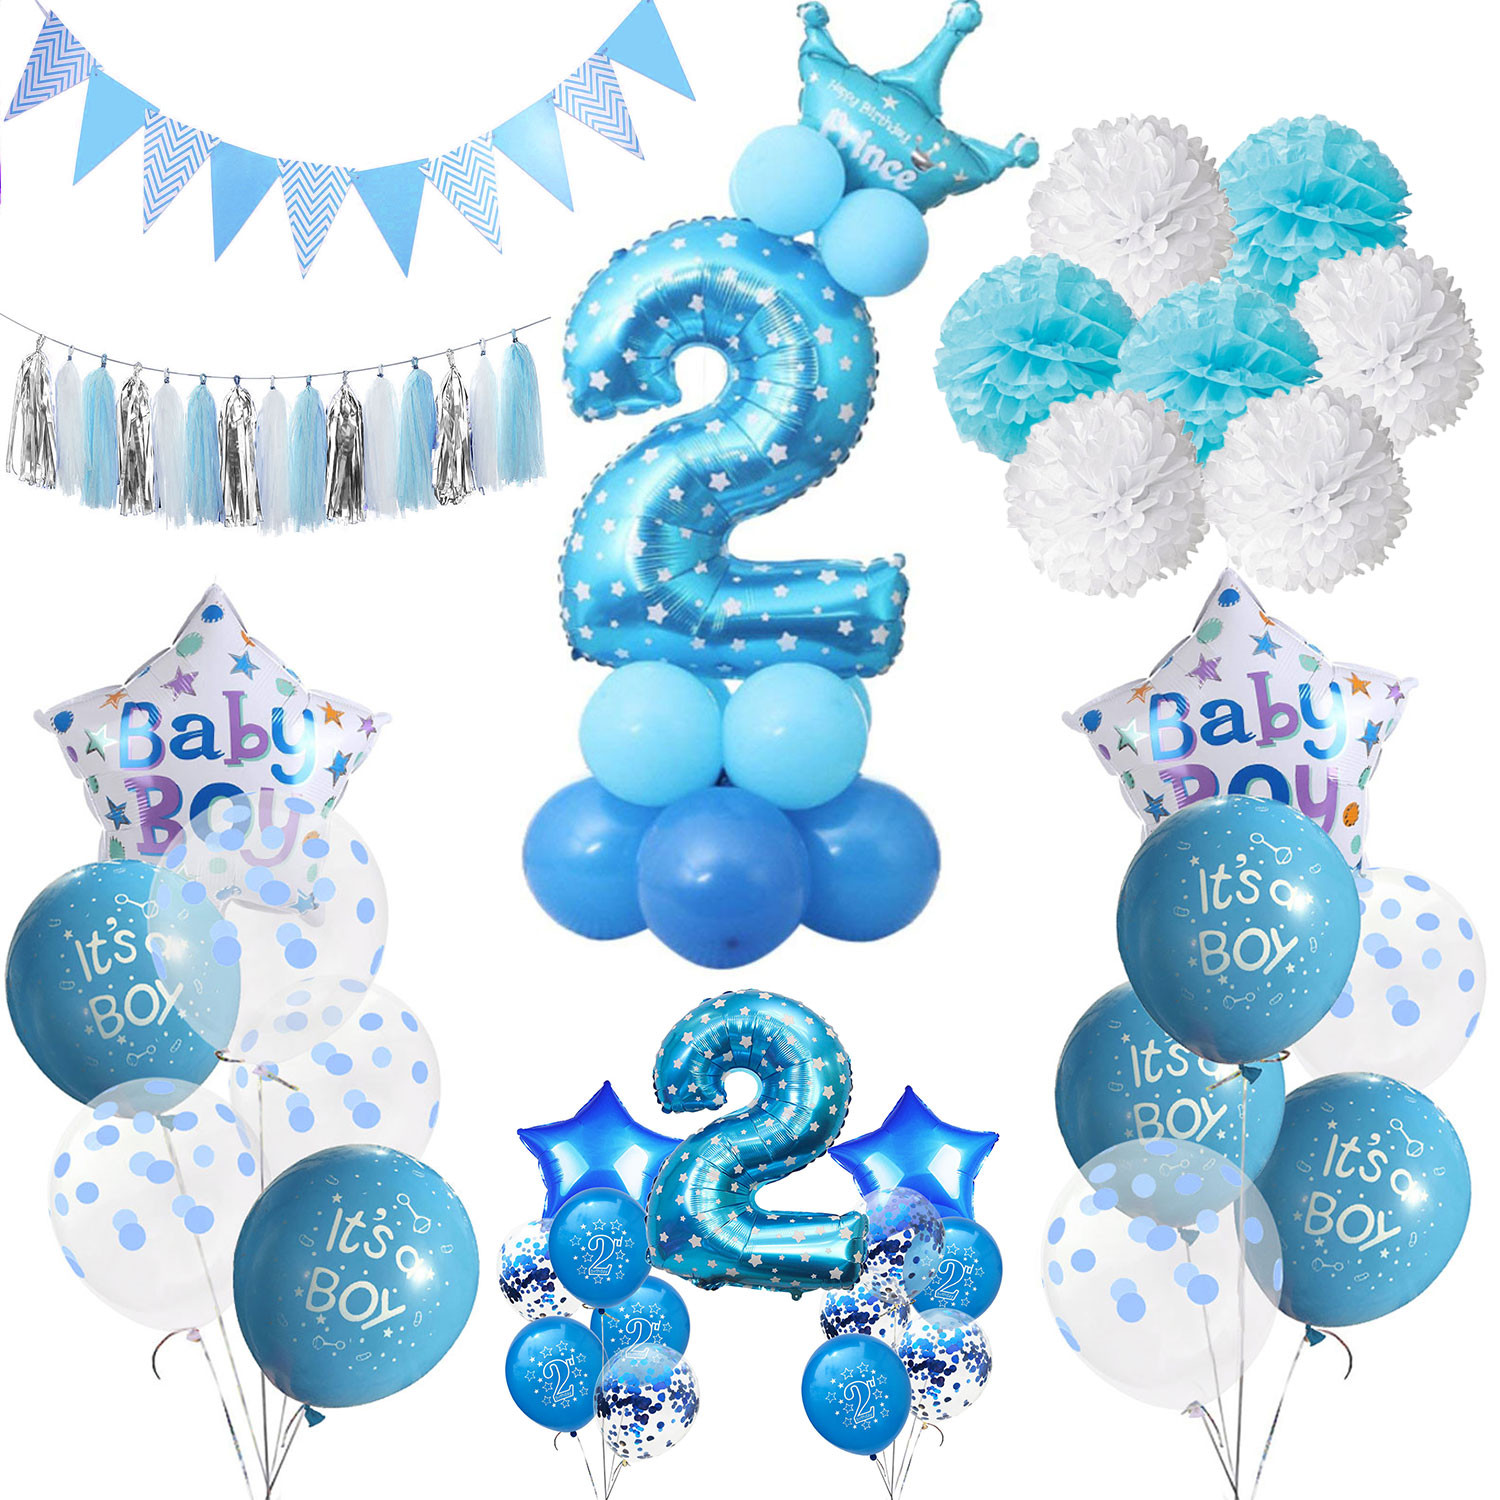 Two Years Old Birthday Party Ideas  ZLJQ Boy 2 Year Old Birthday Party Decor Foil Confetti